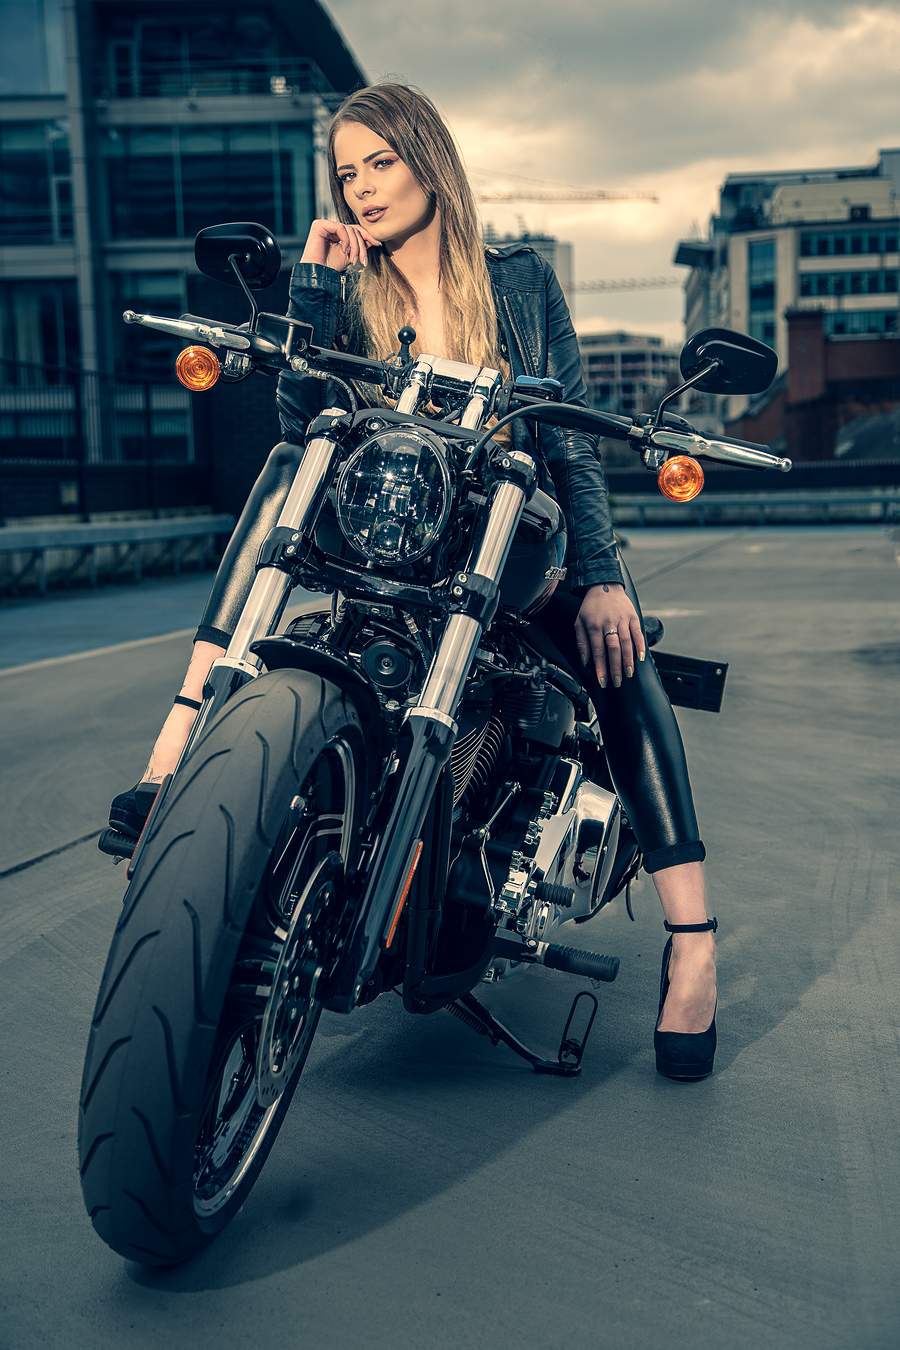 Girl on a bike / Photography by Philip Leighton photography, Model Shell jennifer, Makeup by Shell jennifer, Post processing by Philip Leighton photography, Stylist Shell jennifer / Uploaded 29th March 2020 @ 12:11 PM